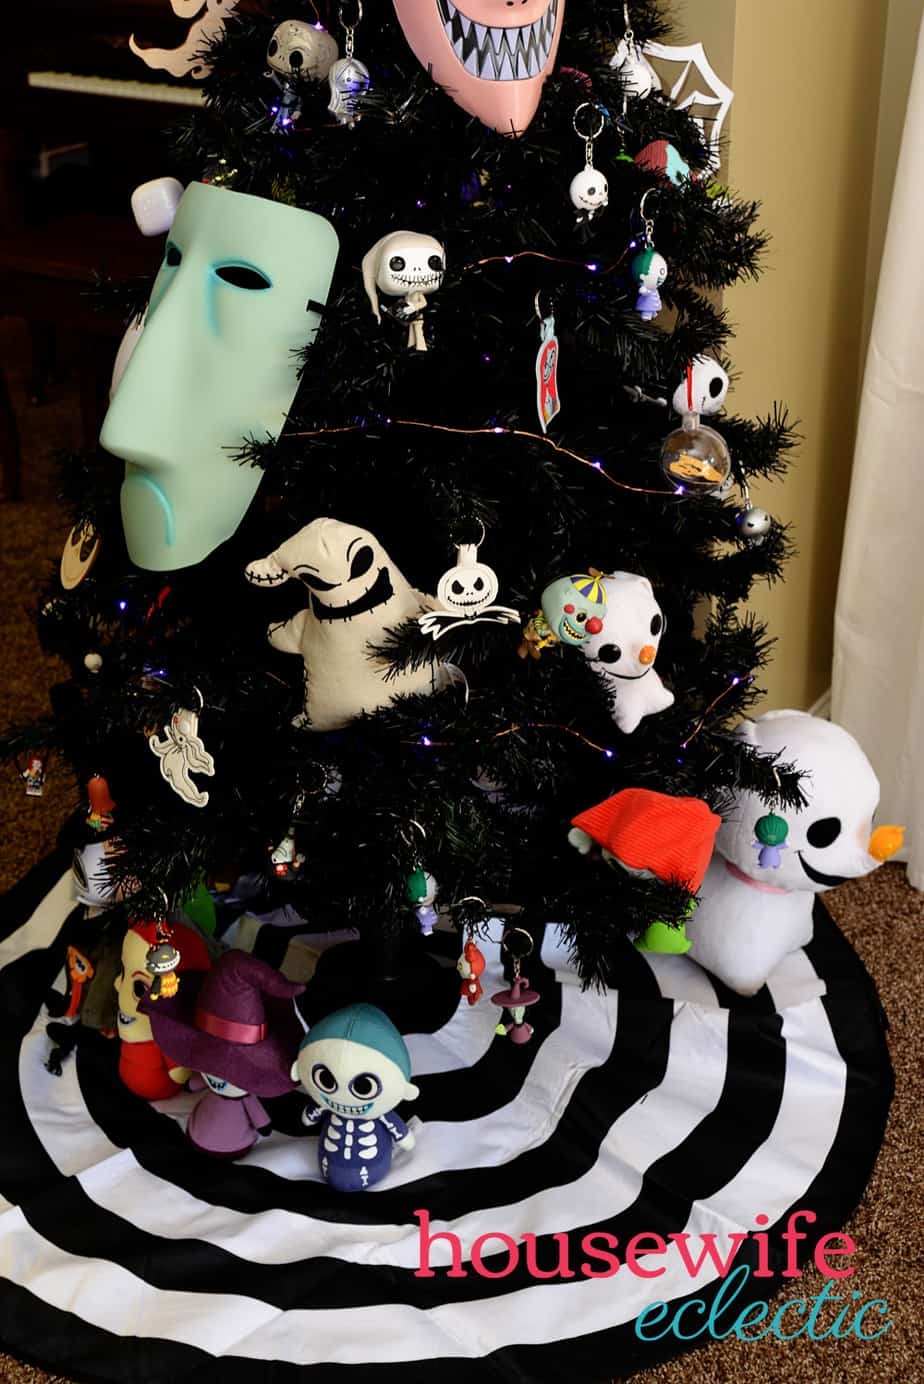 Nightmare Before Christmas Tree 8 - Housewife Eclectic